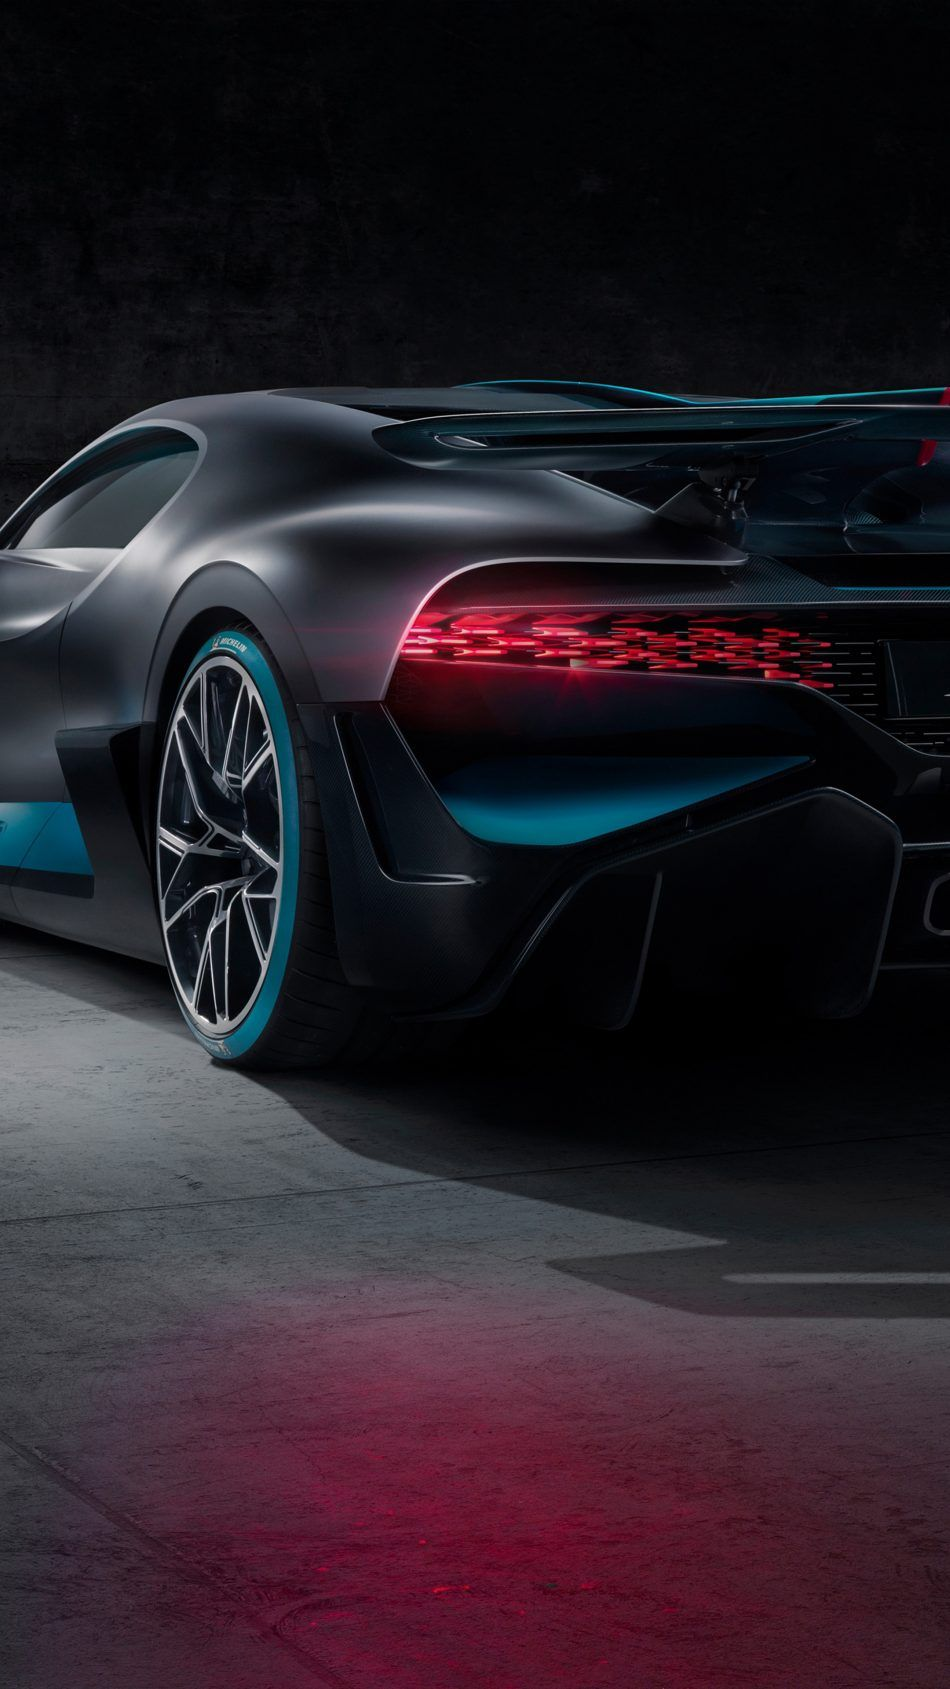 Bugatti Divo 2019 Car Wallpapers Pinterest Bugatti Cars And